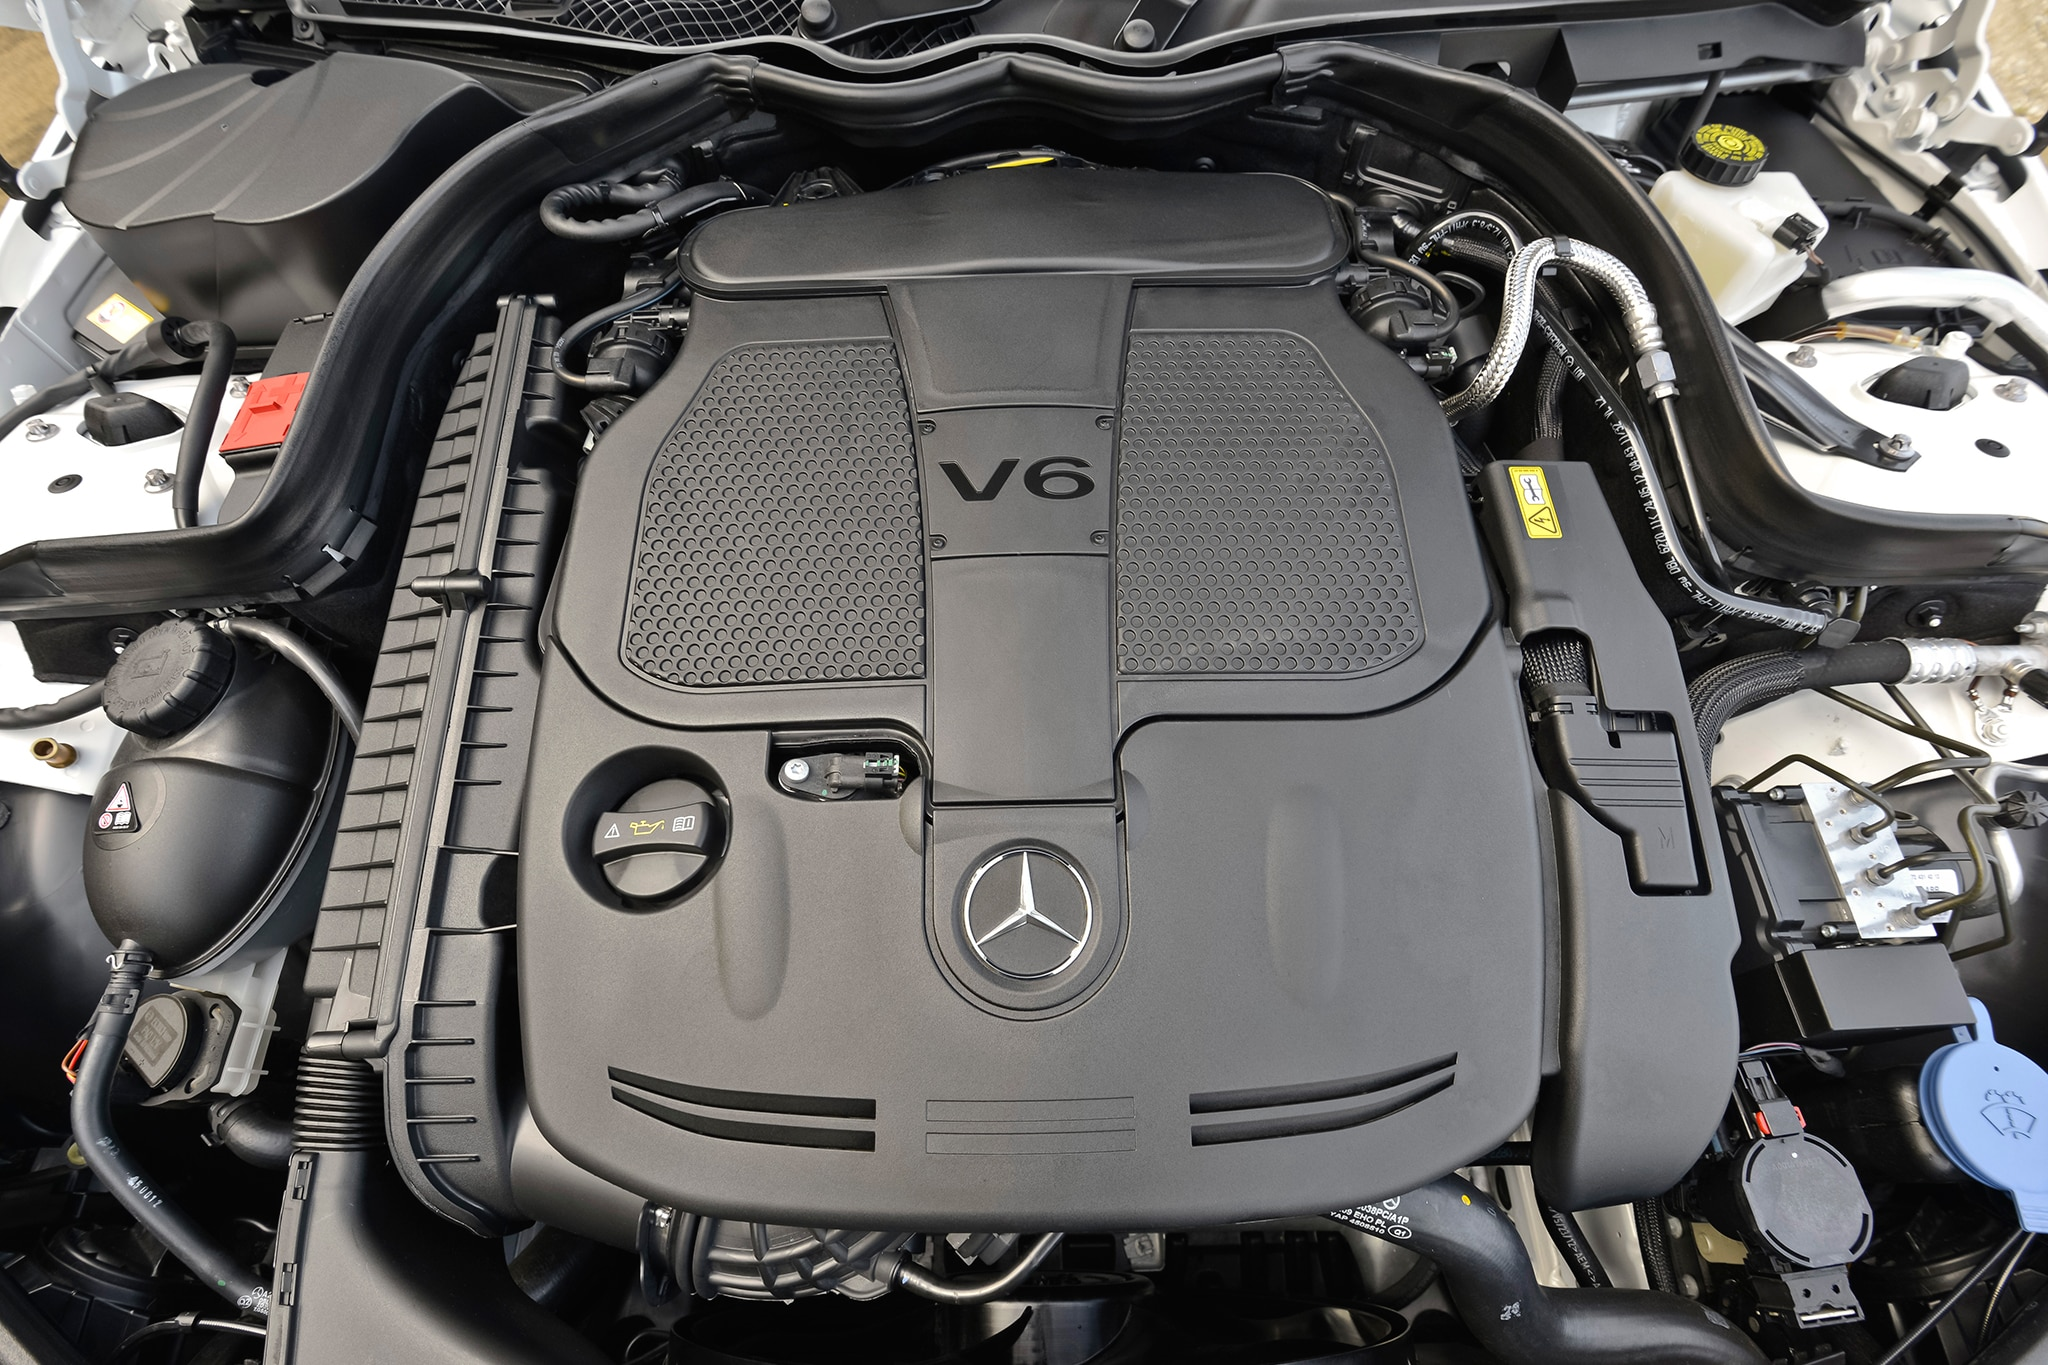 2013 14 mercedes benz c300 4matic fuel economy revised by epa for Mercedes benz c300 engine